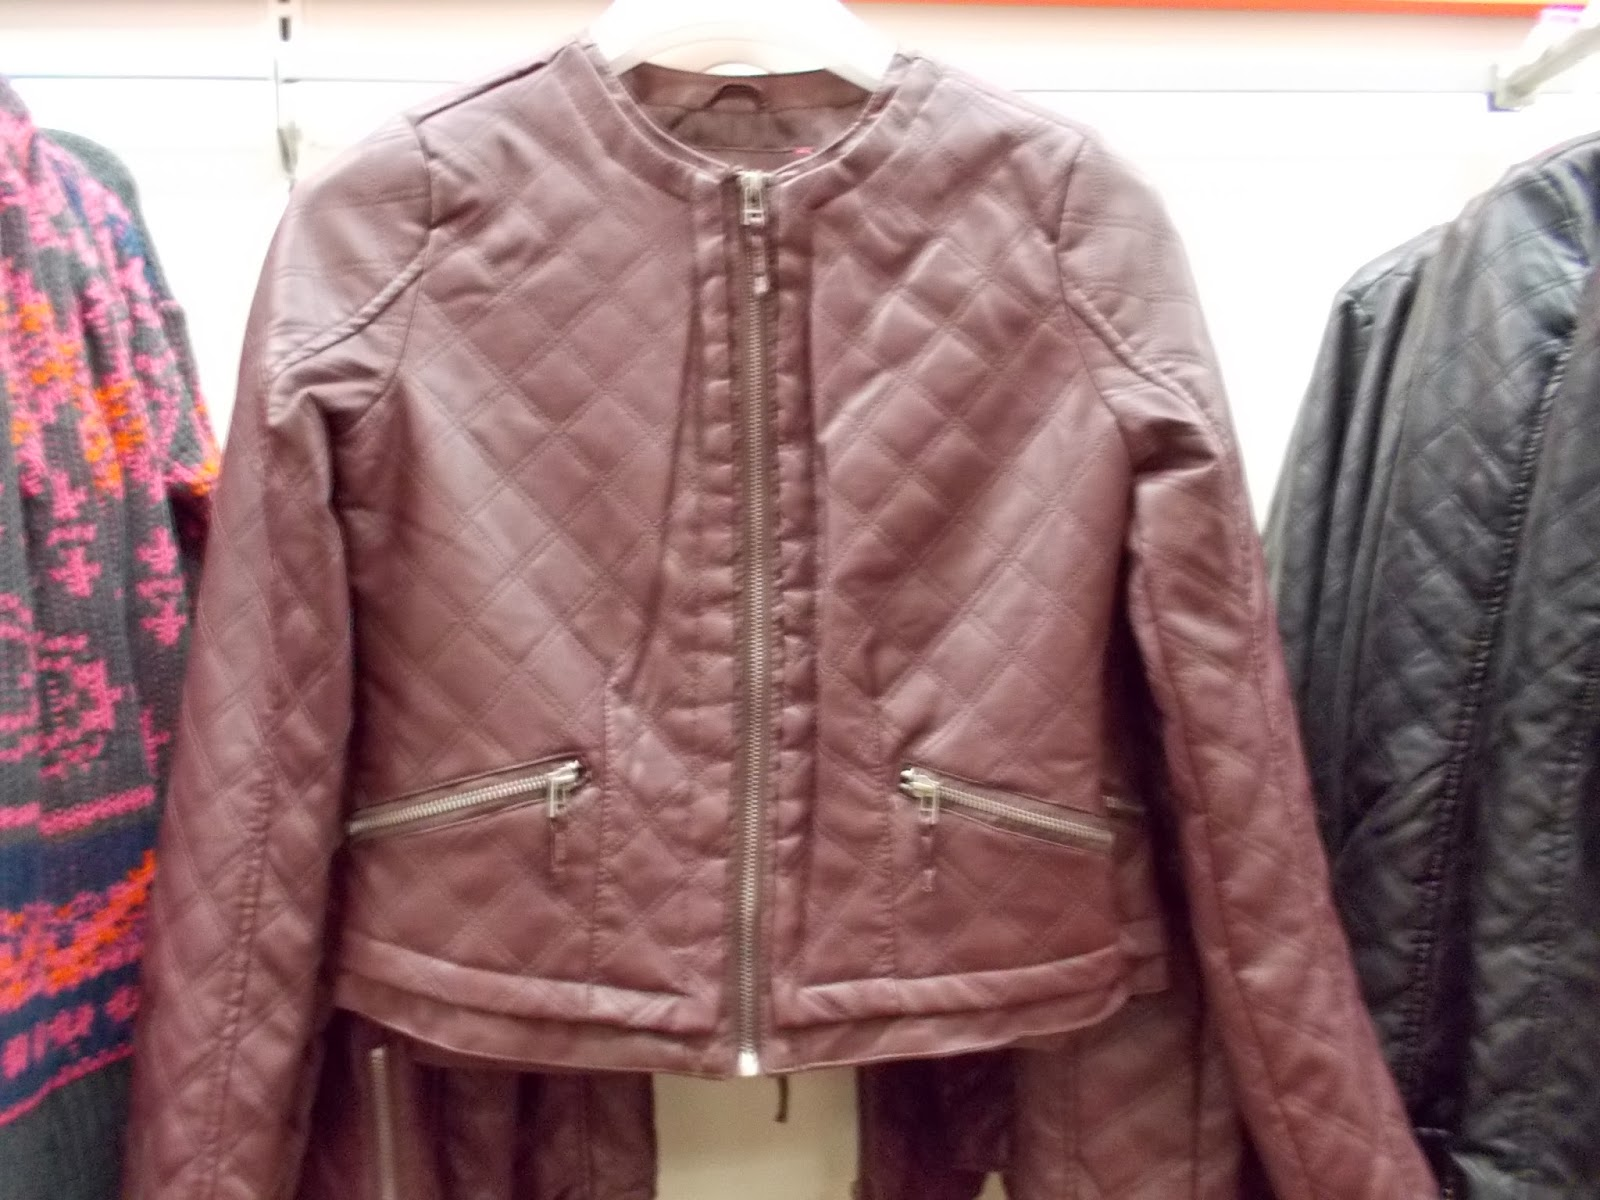 Leather jacket target - These Faux Leather Jackets Are Similar To A Free People Version I Found At Marshalls Two Months Ago